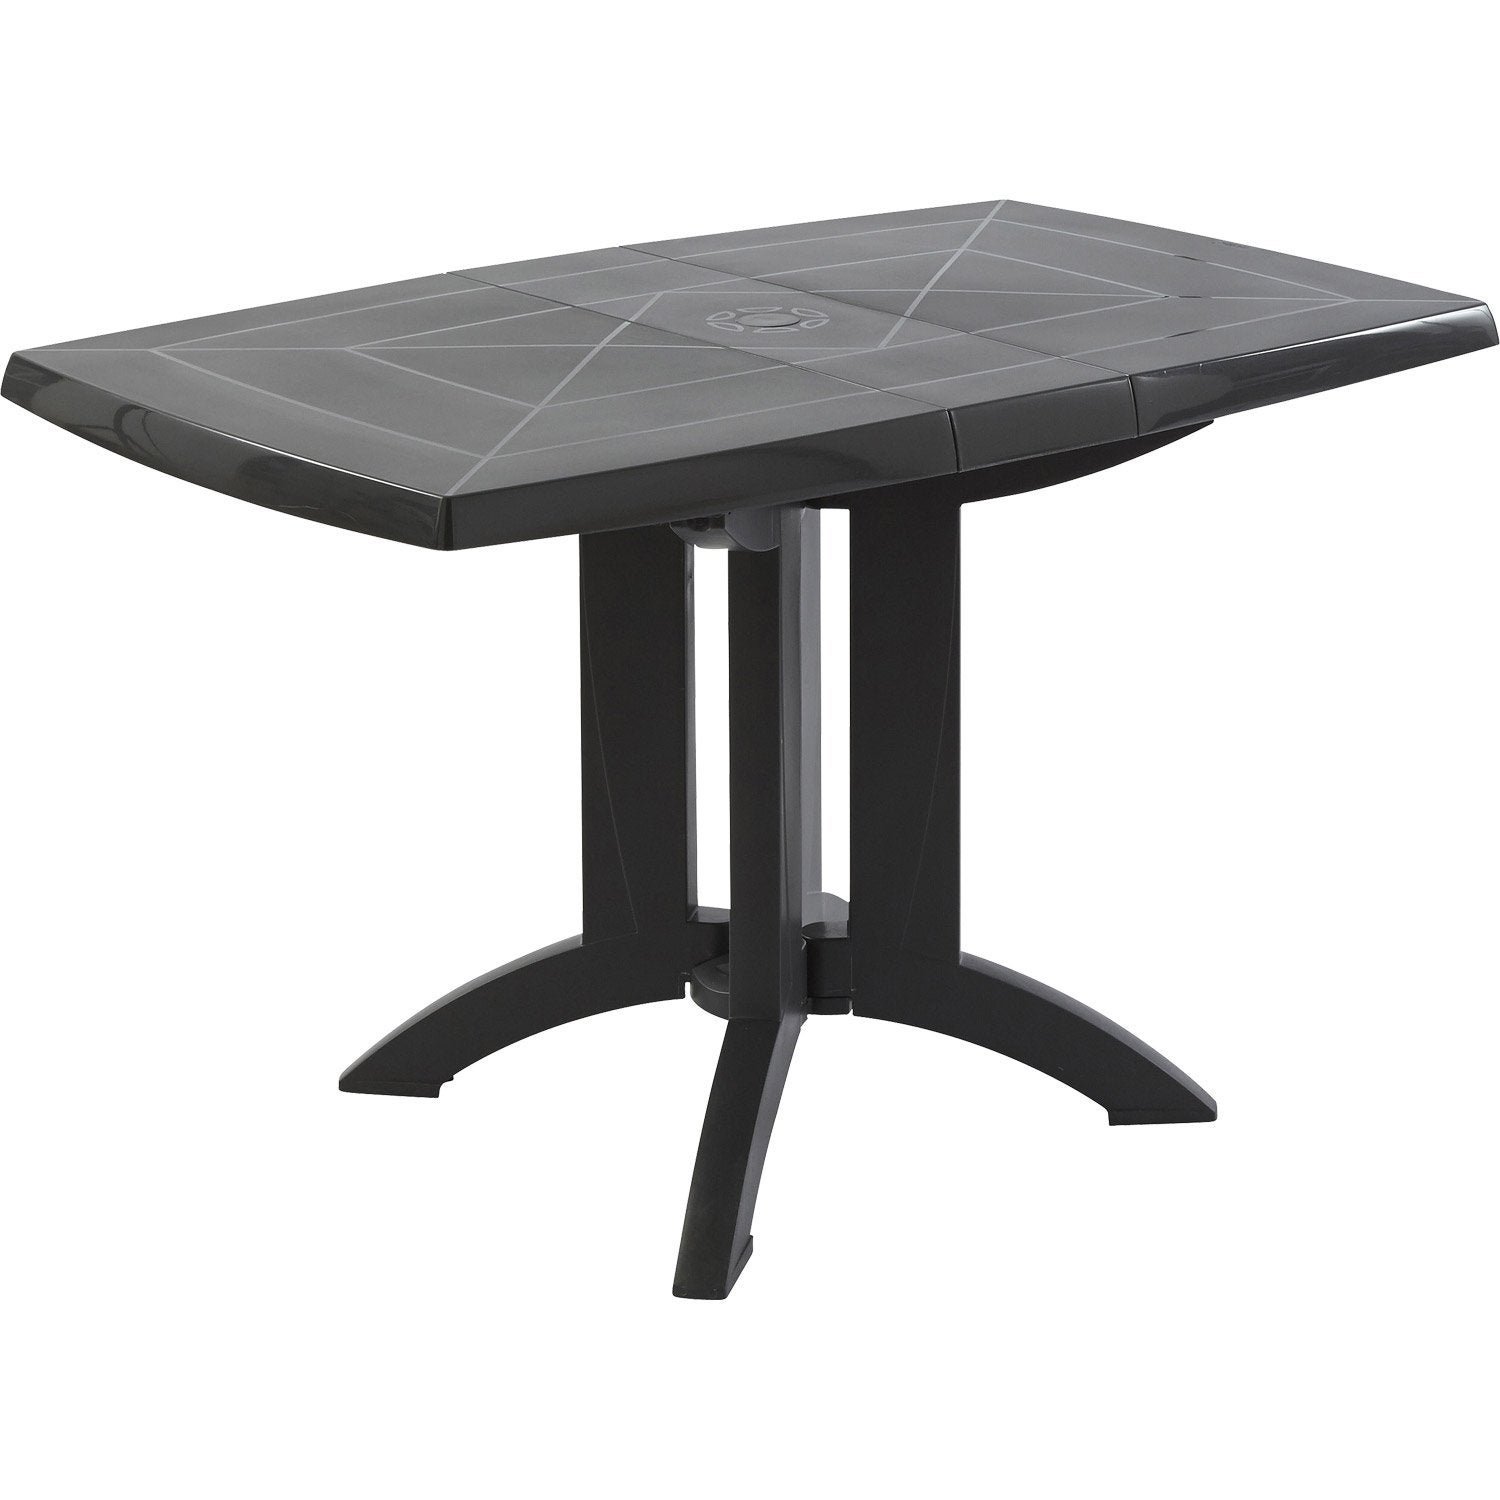 Table de jardin GROSFILLEX Véga rectangulaire anthracite 4 ...